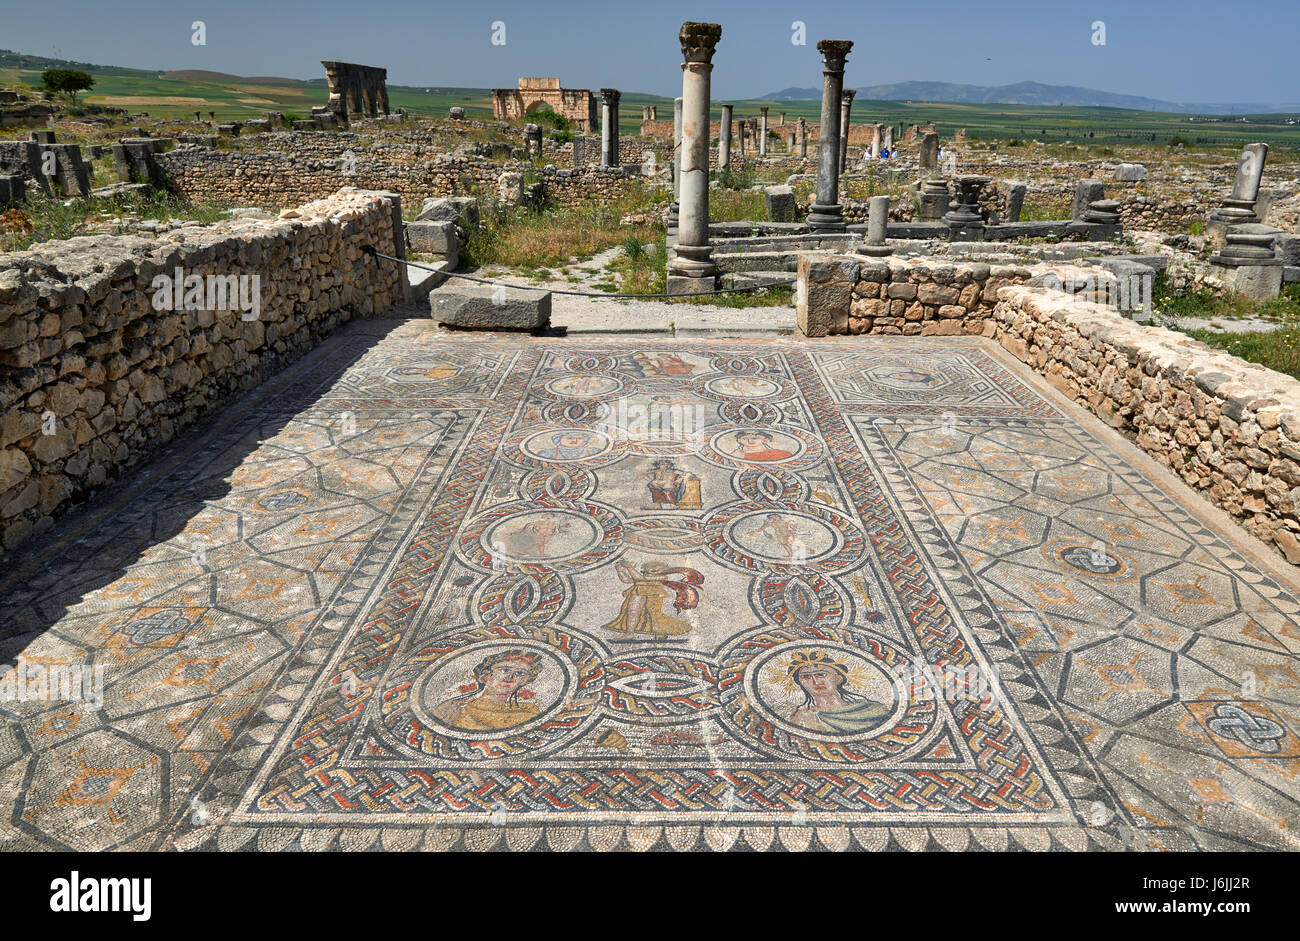 Mosaic inside Gordion palace, House of Dionysus, in the ...